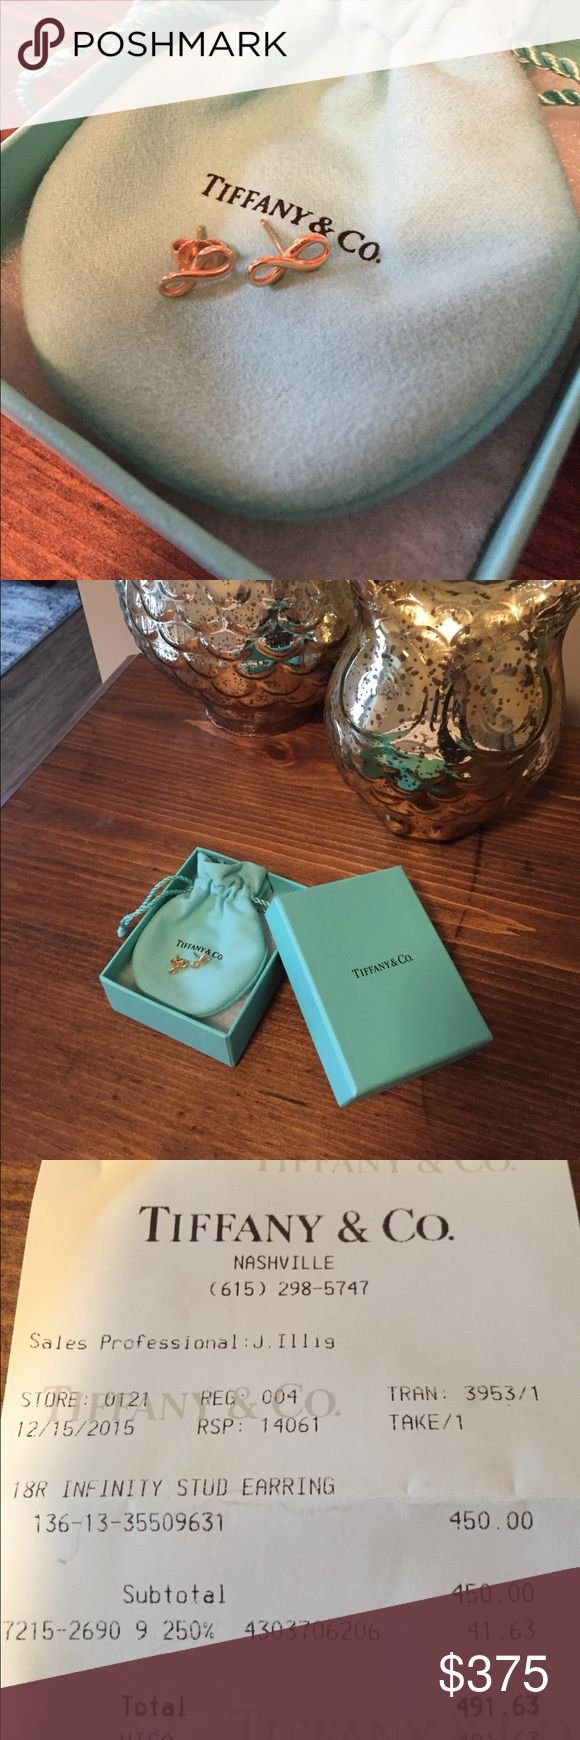 Authentic Tiffany and Co gold infinity earrings Authentic Tiffany and Co gold Infiniti earrings with original receipt. These are missing one of the backs. Still in great condition! Almost $500 new. Tiffany & Co. Jewelry Earrings